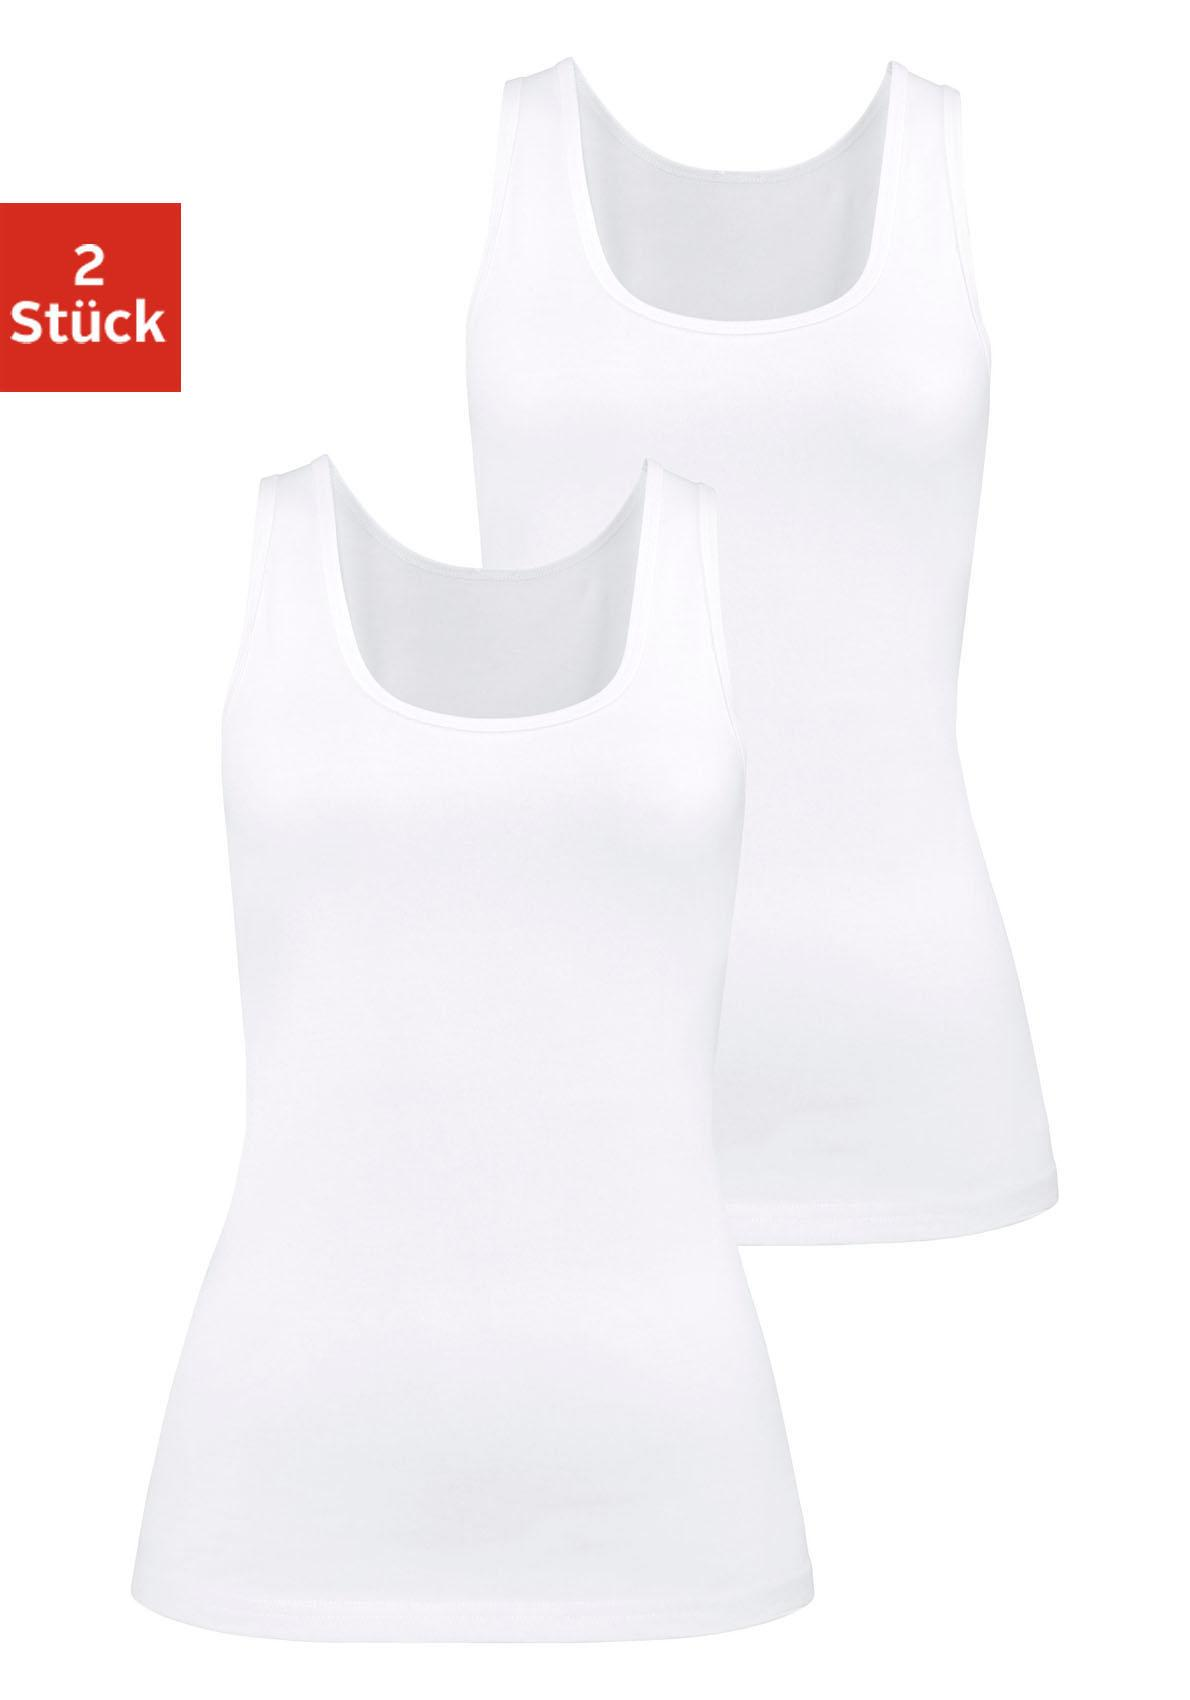 H.I.S Tanktops (2 Stück) »Cotton made in Africa«